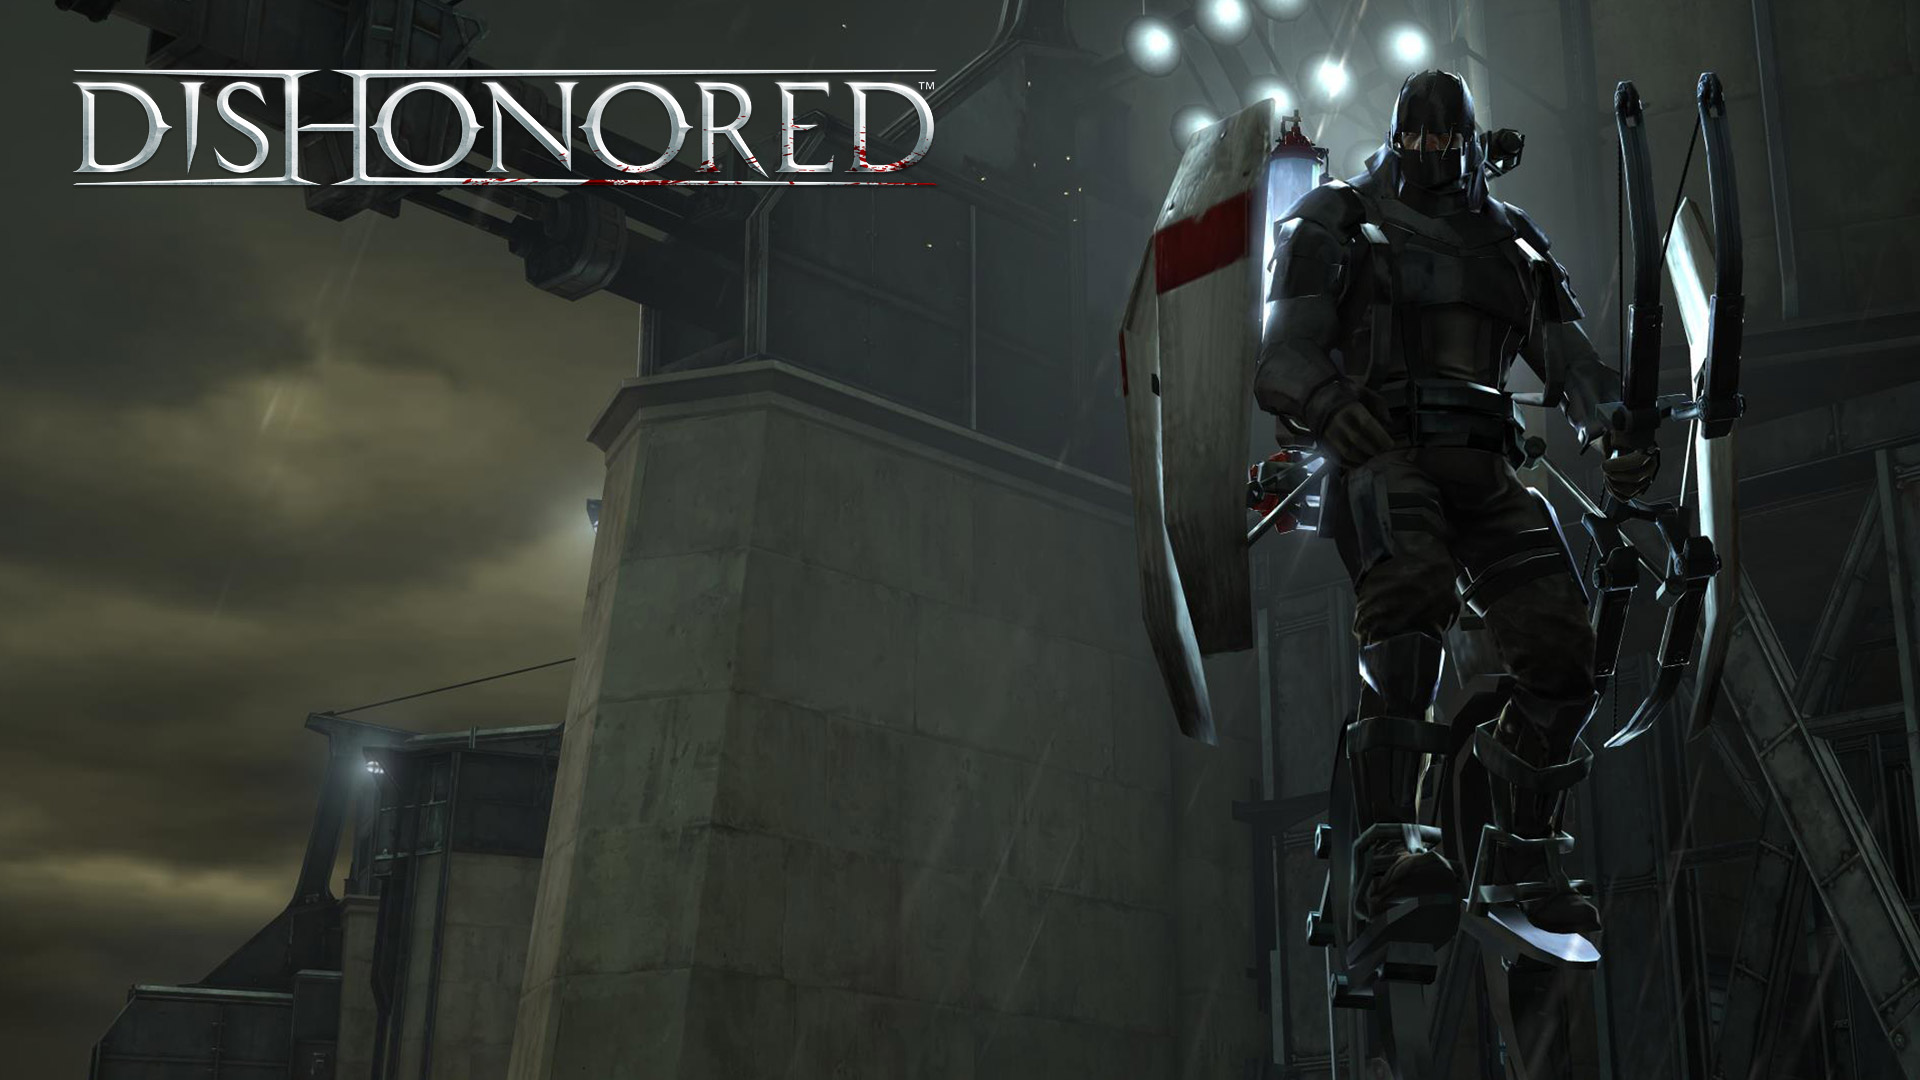 dishonored wallpaper 44271